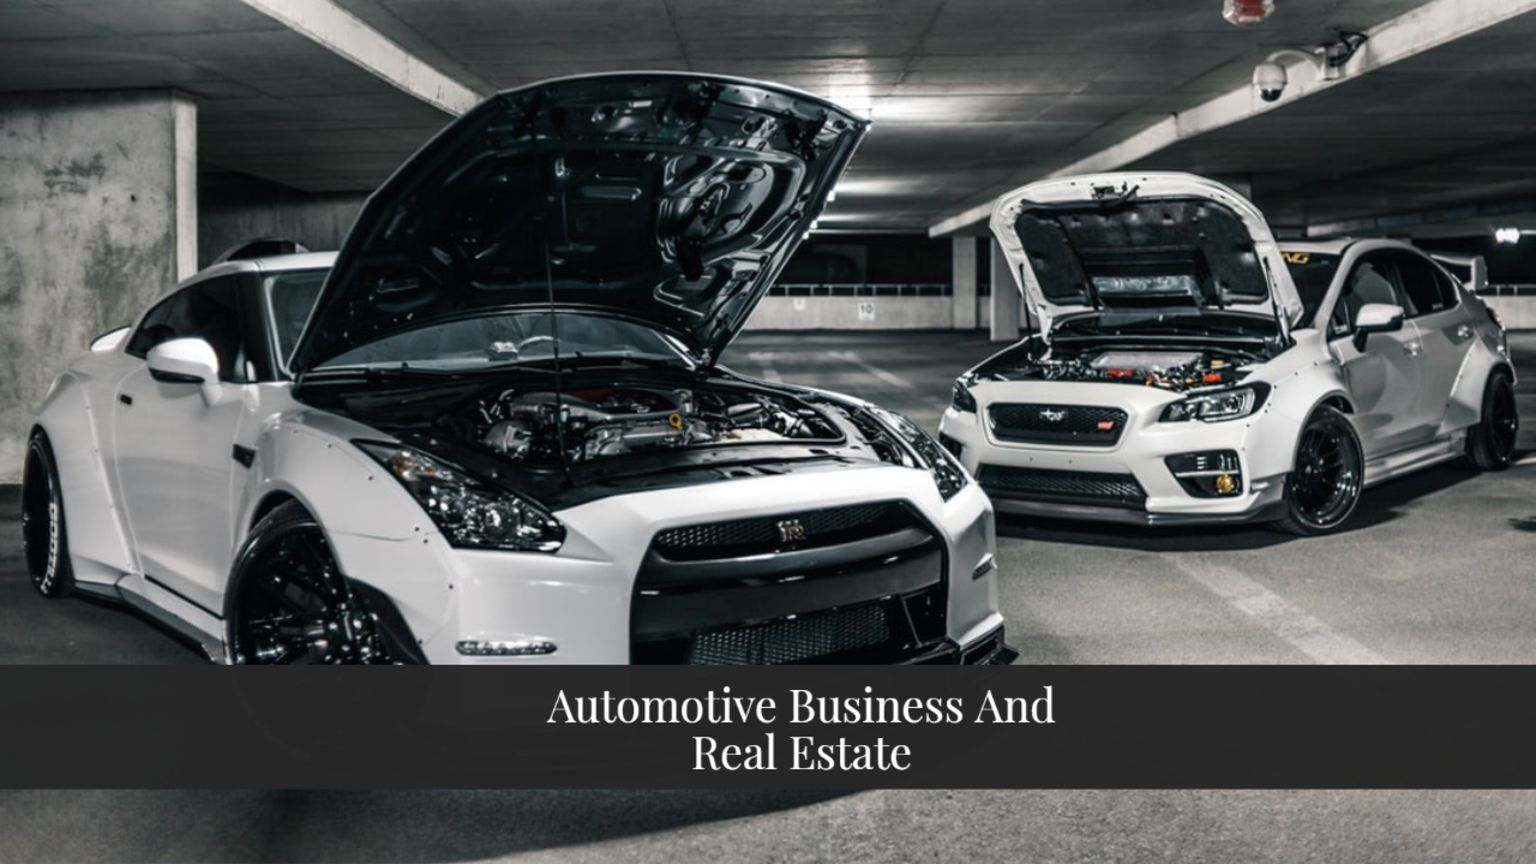 Long Island Automotive Business & Real Estate